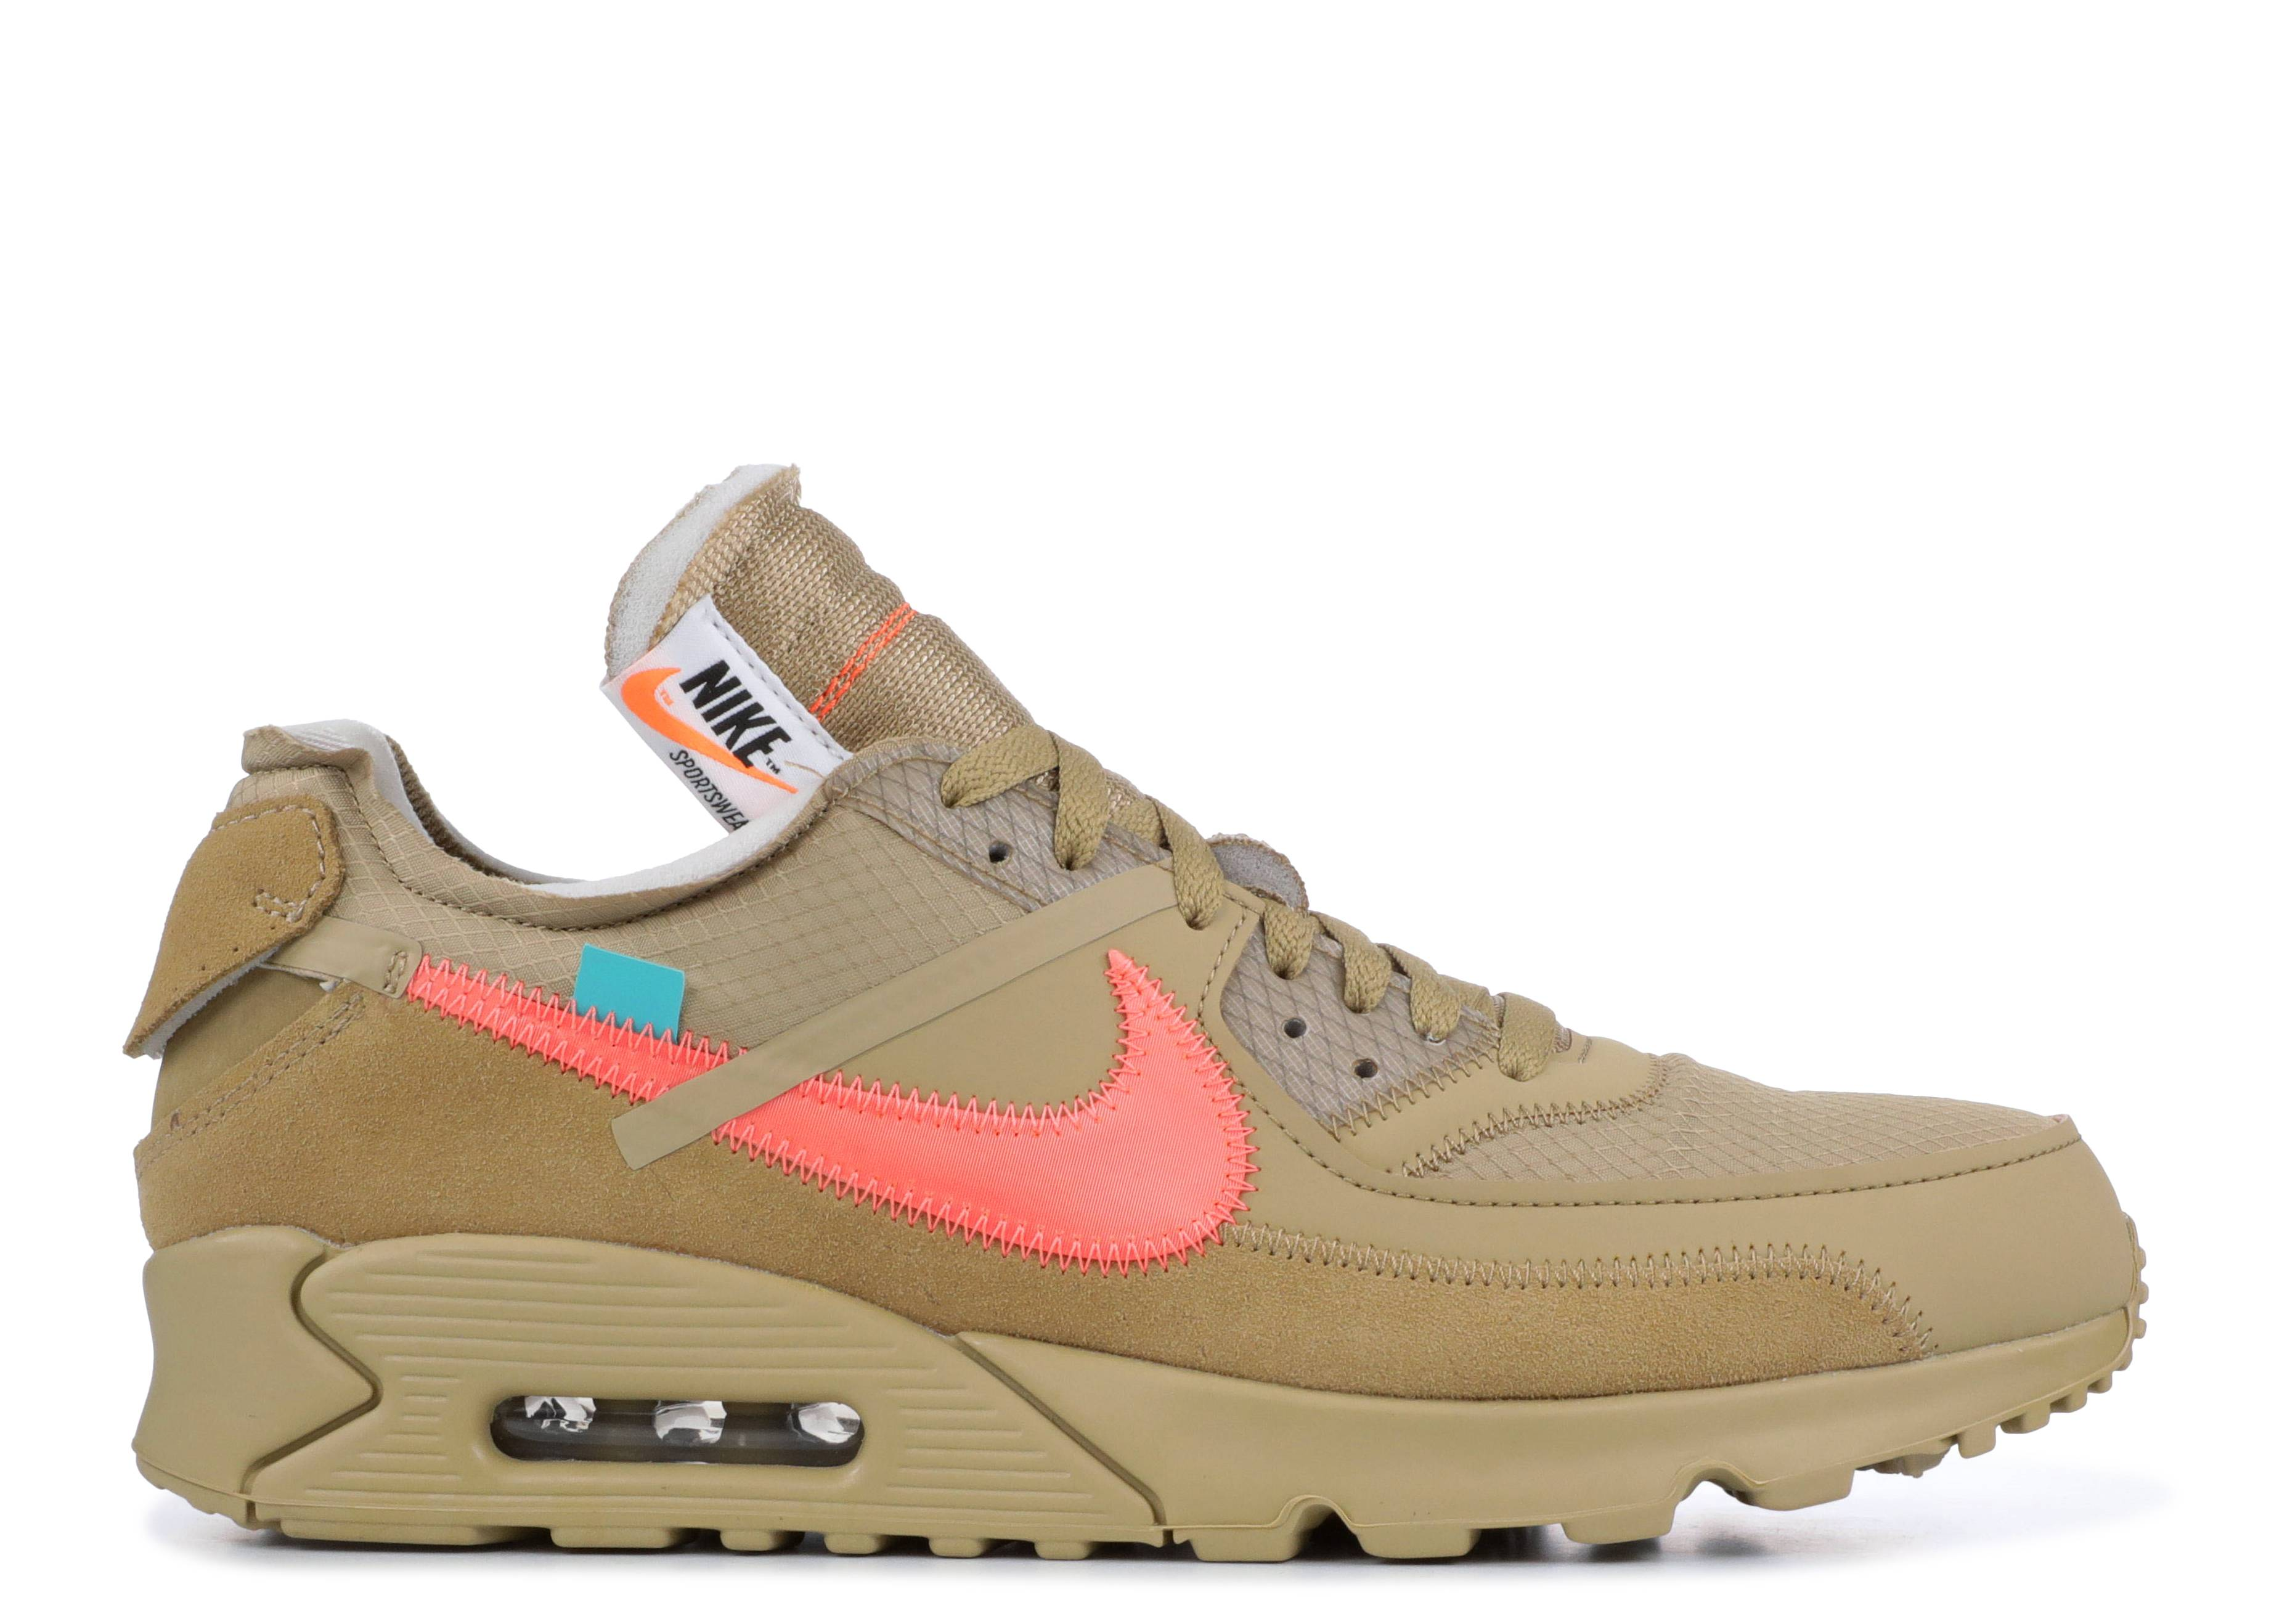 8d0c61313be4 Nike Air Max 90 - Men s   Women s Shoes